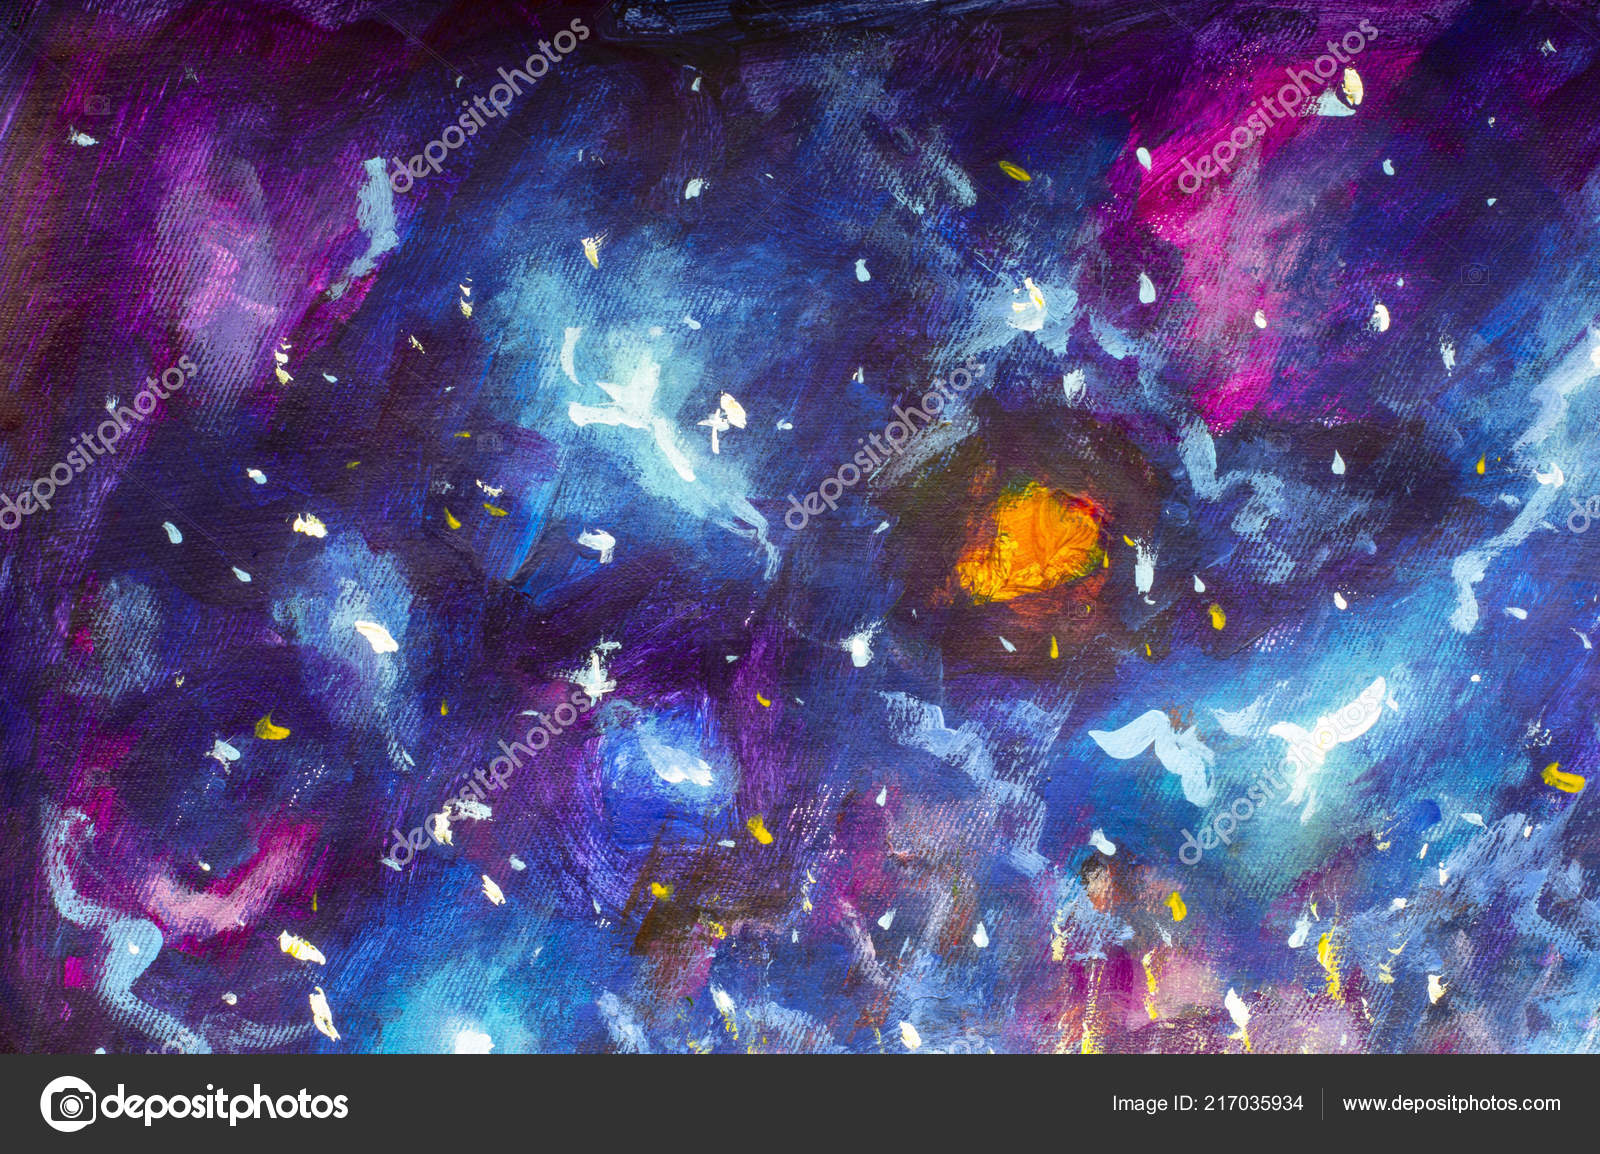 Star Modern Violet Galaxies Painting Cosmos Oil Universe Blue Canvas WYAUqWgwR